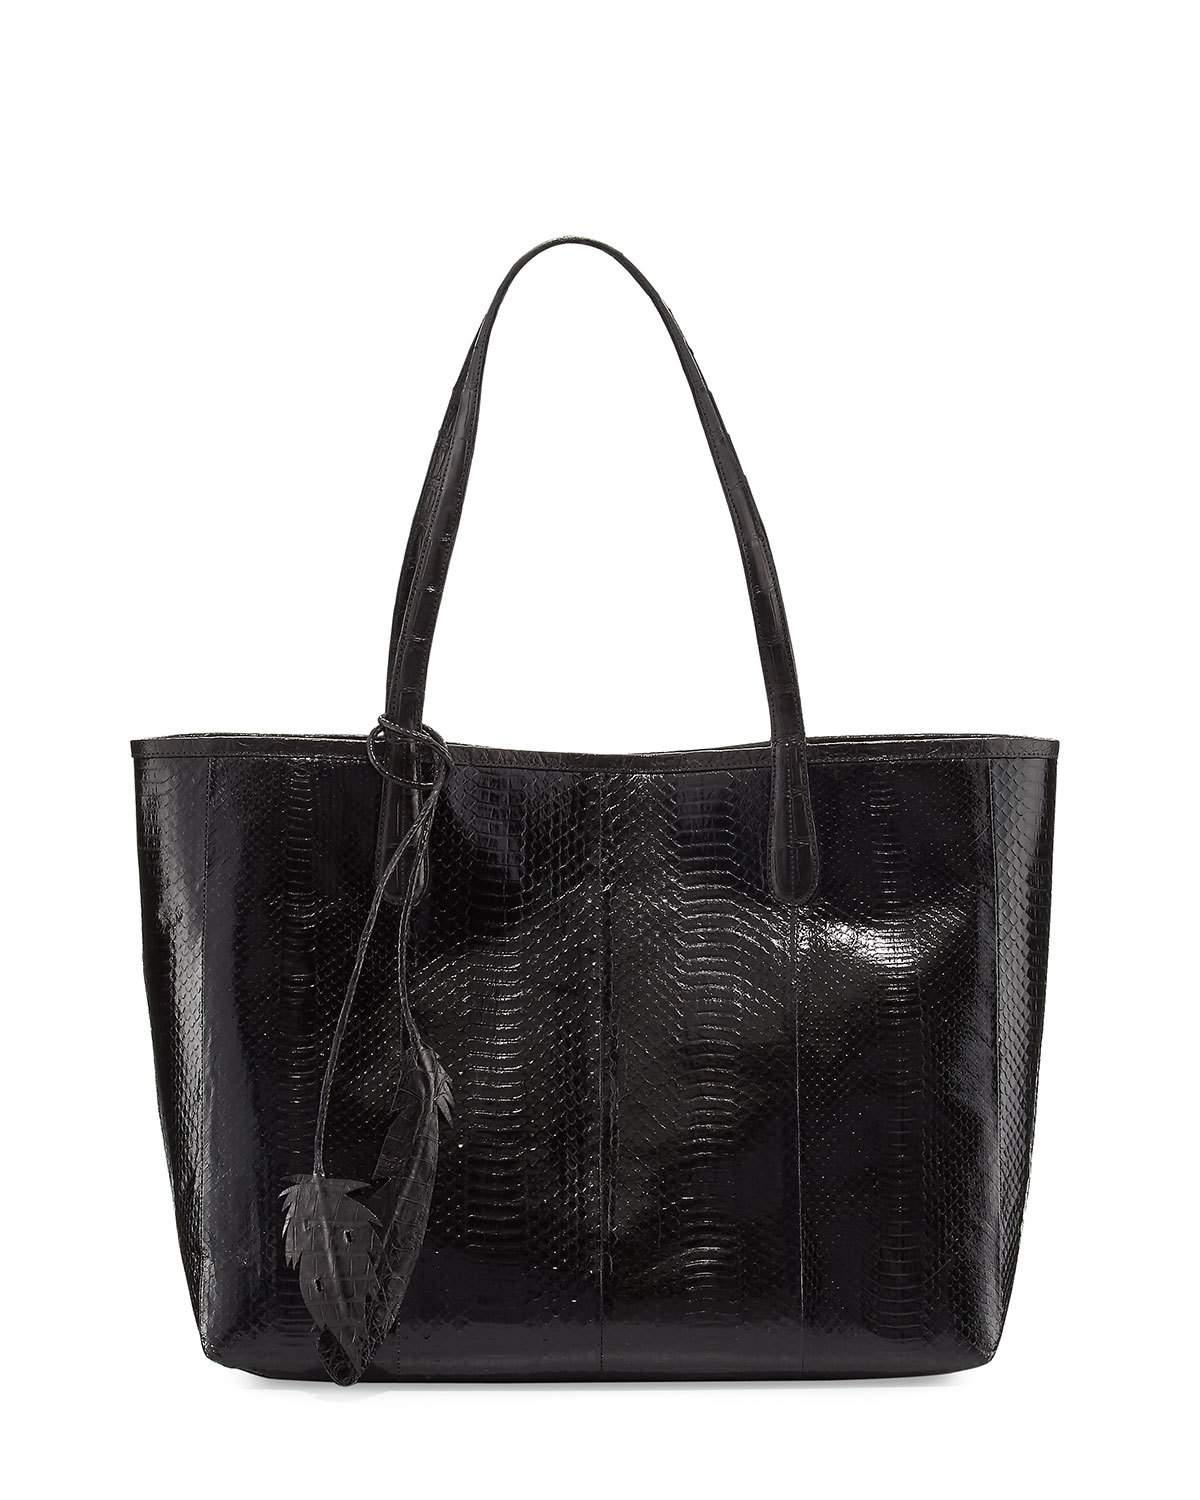 Nancy gonzalez erica crocodile leaf tote bag in black lyst for Nancy gonzalez crocodile tote